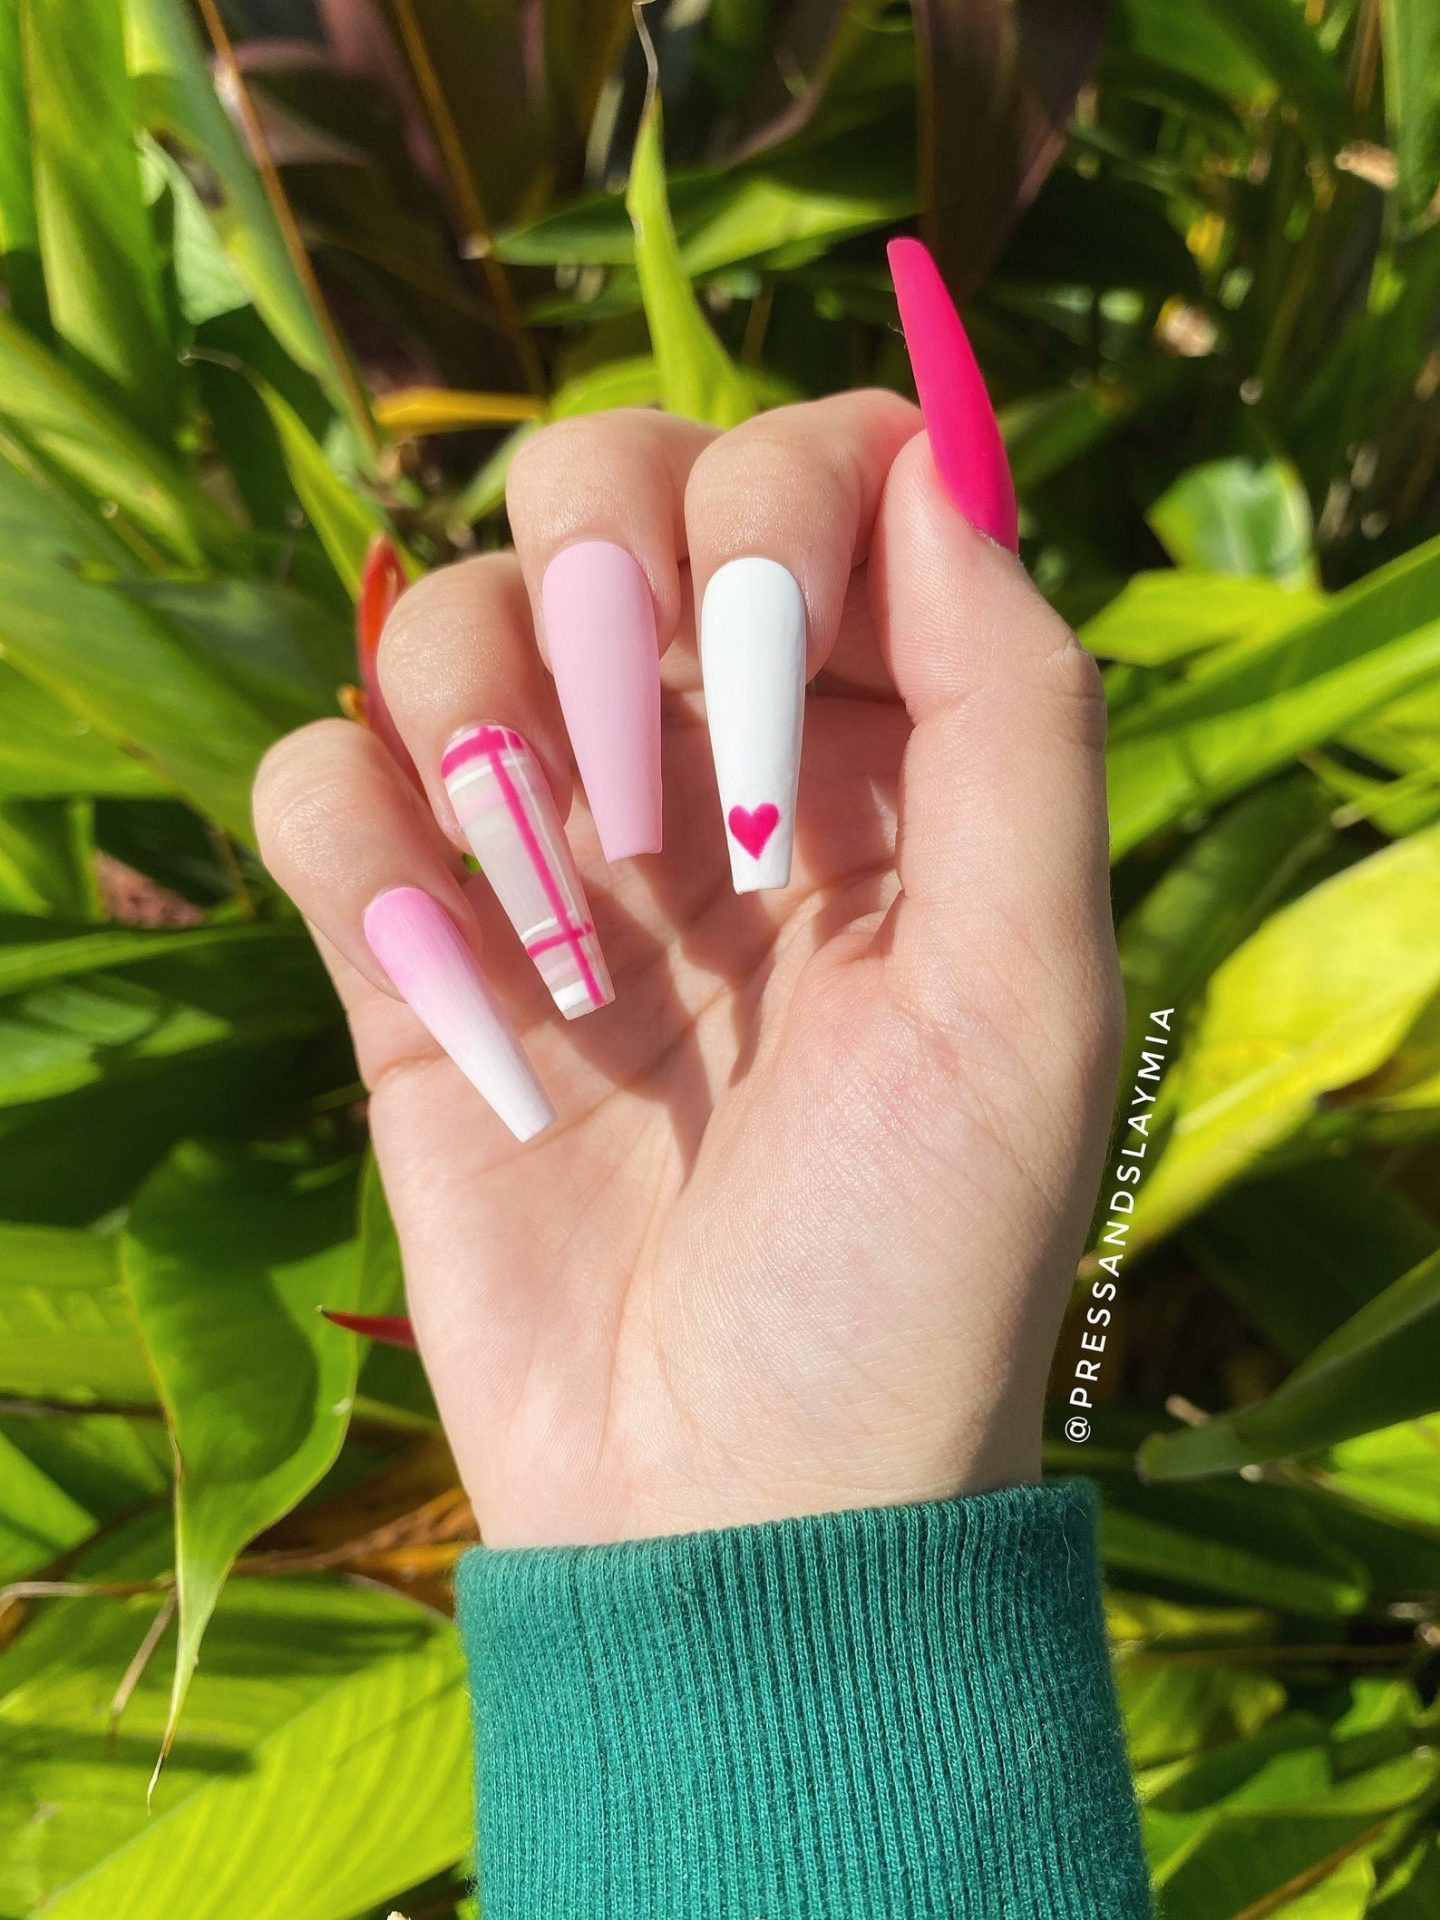 Pink gradient nails with Burberry print and hearts